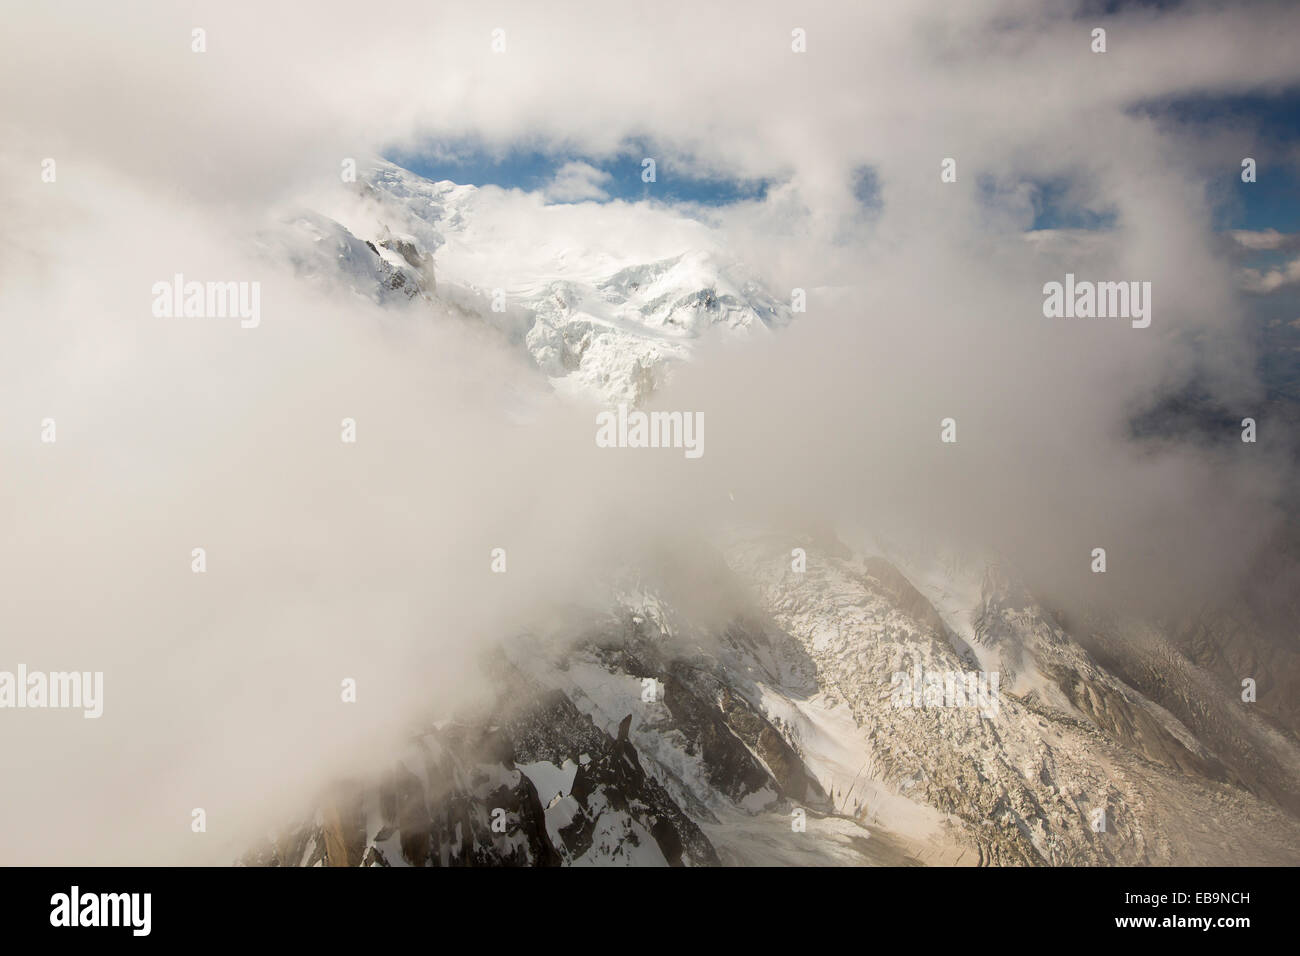 Mont Blanc from the Aiguille Du Midi above Chamonix, France. Stock Photo